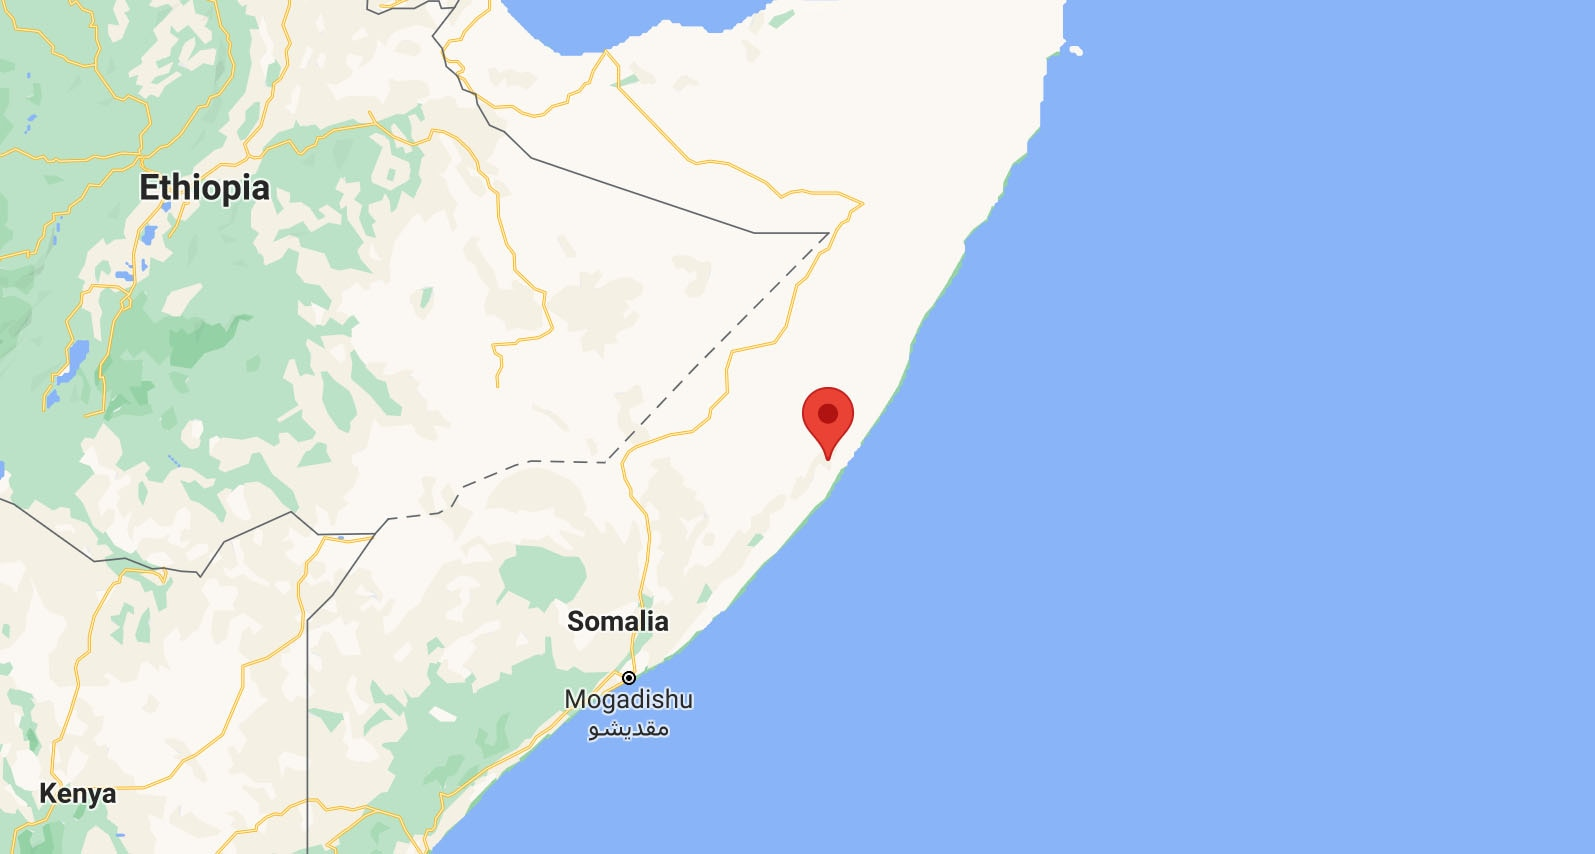 US Military Targets Al-Shabab in Somalia With More Airstrikes